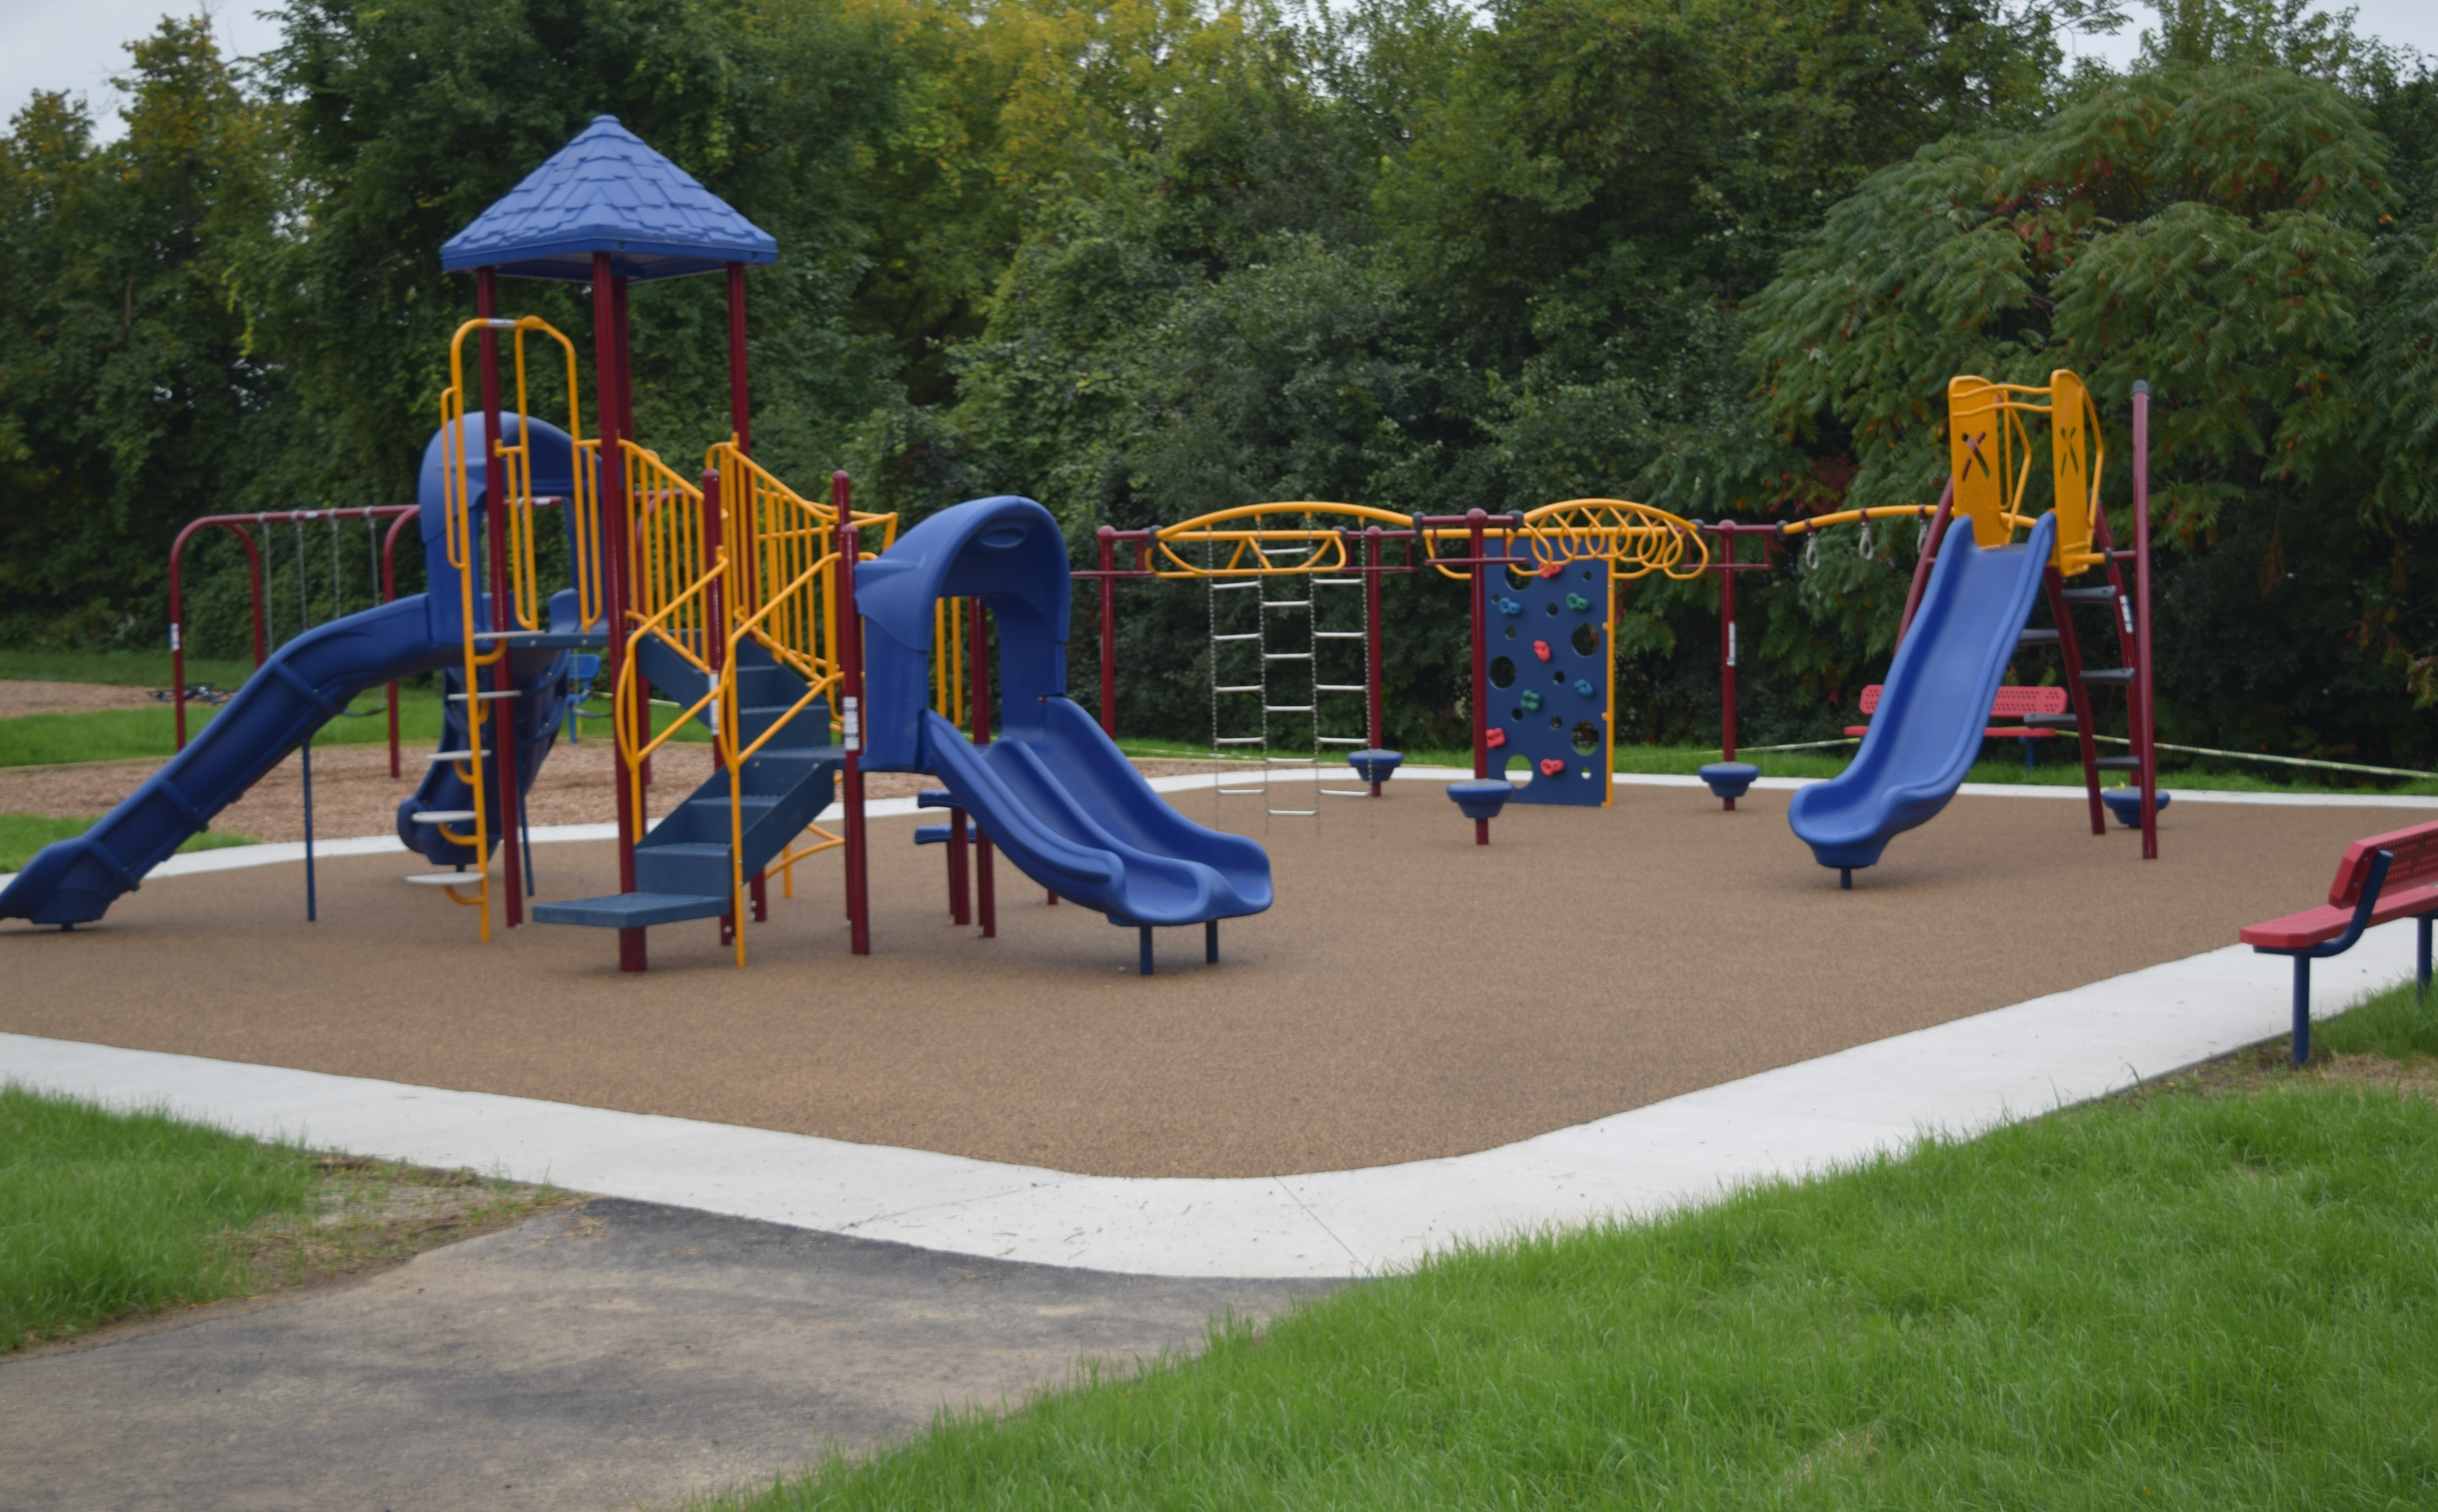 A colorful play structure including slides